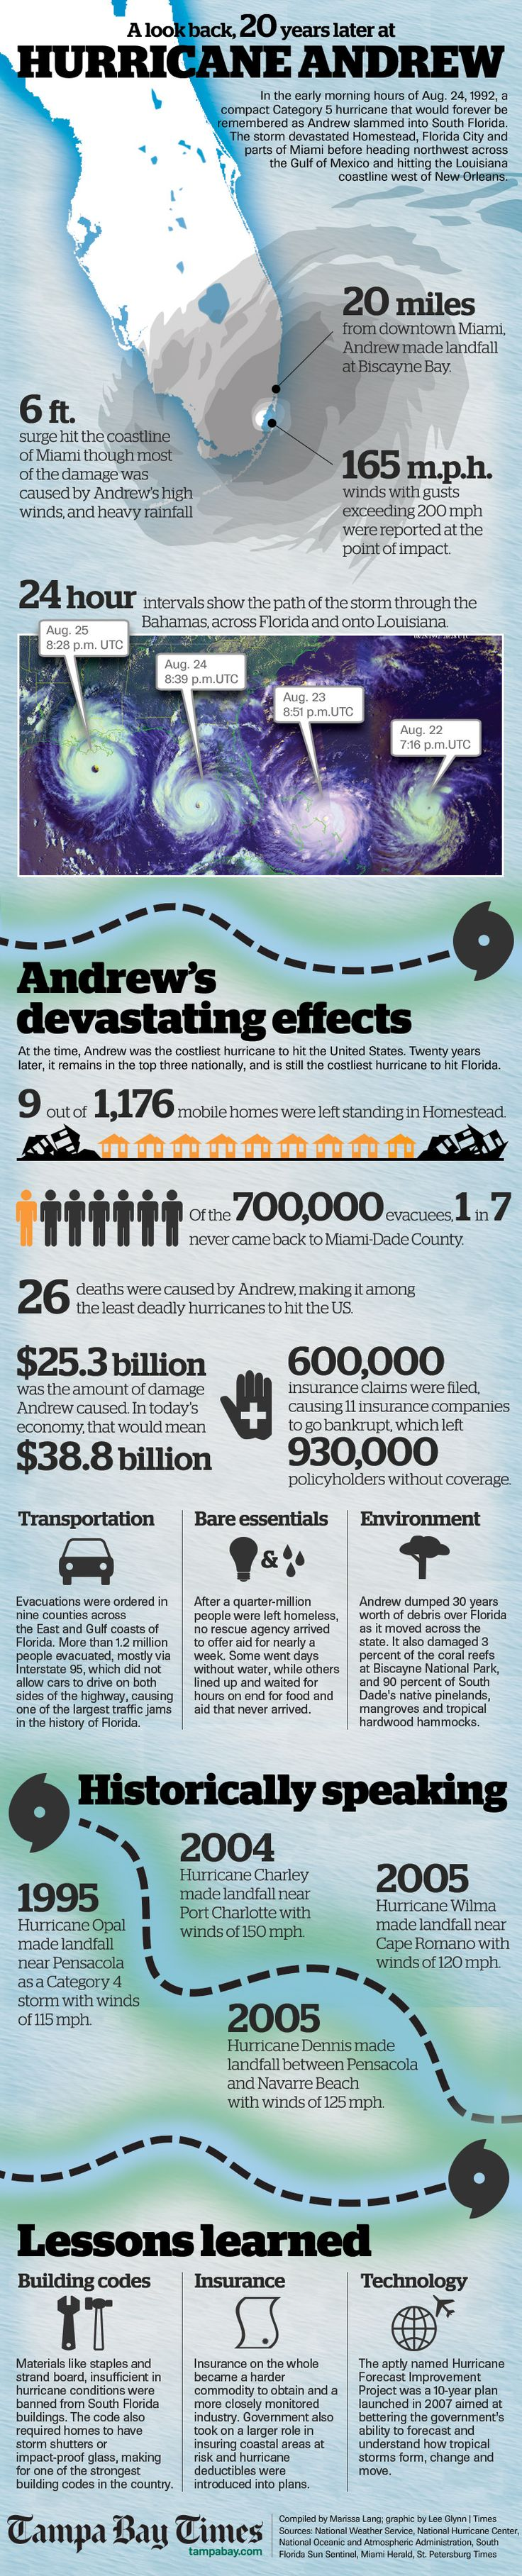 Shareable graphic on the 20th Anniversary of Hurricane Andrew.